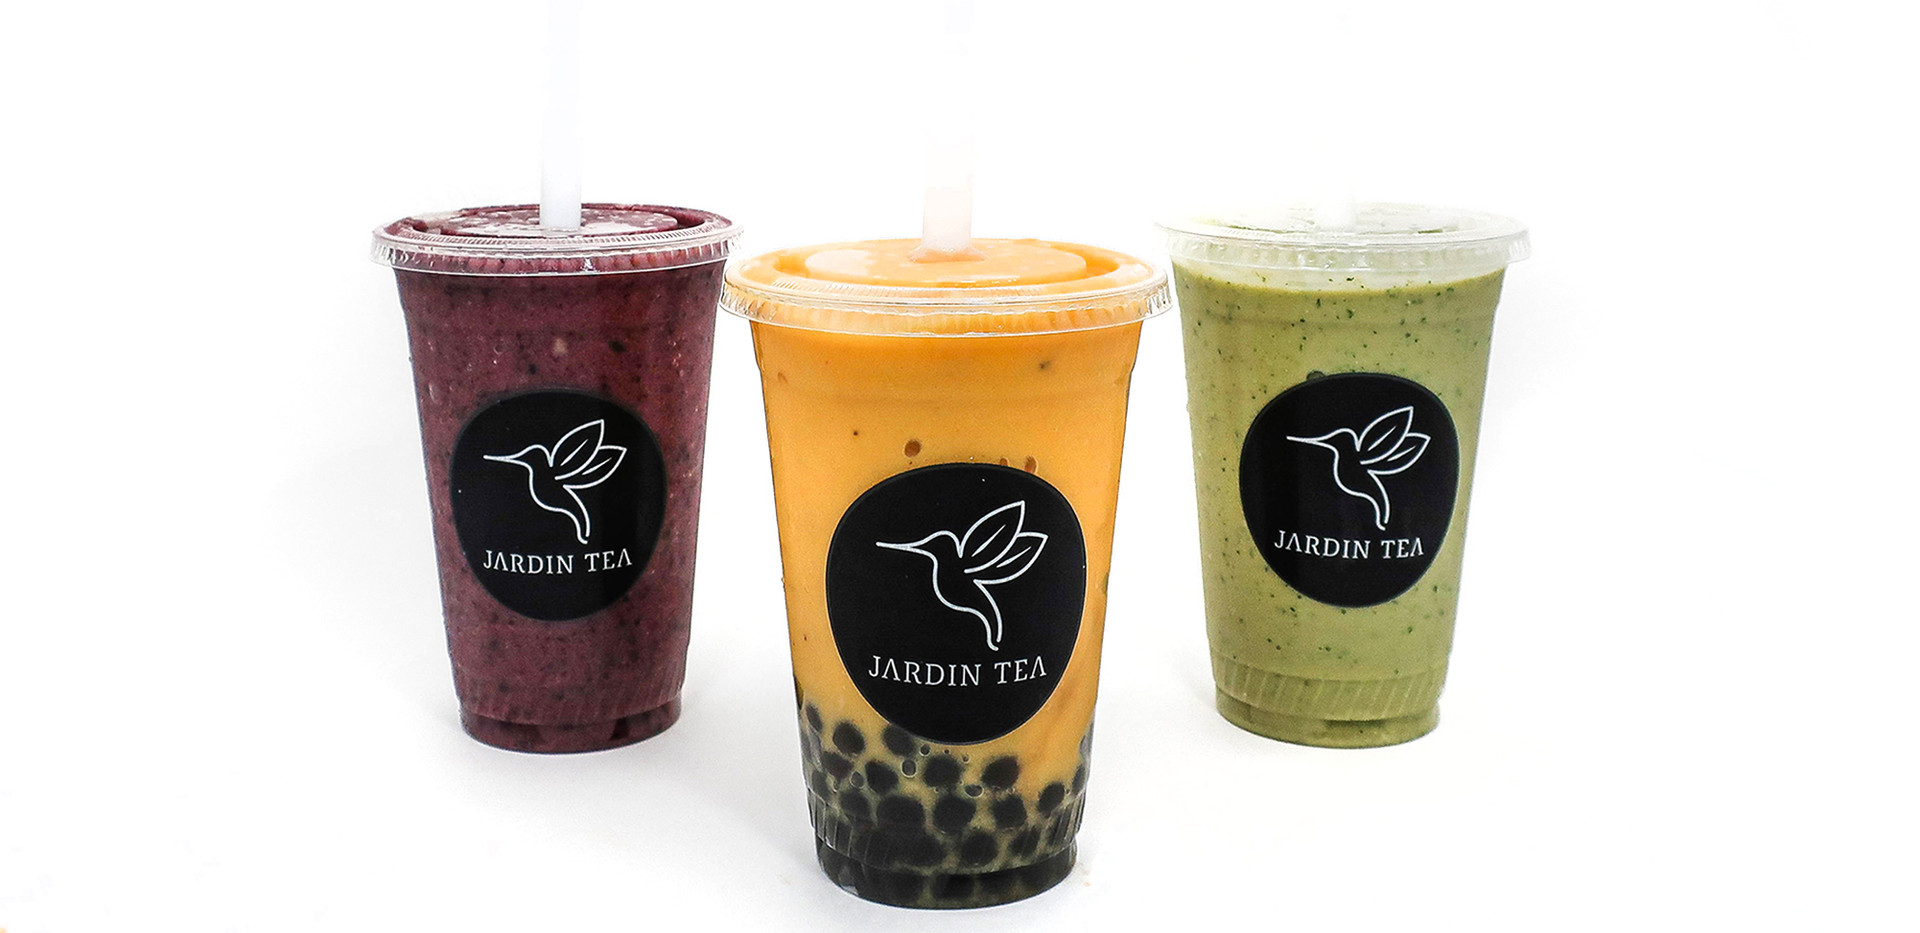 Jardin Tea Smoothie Drinks